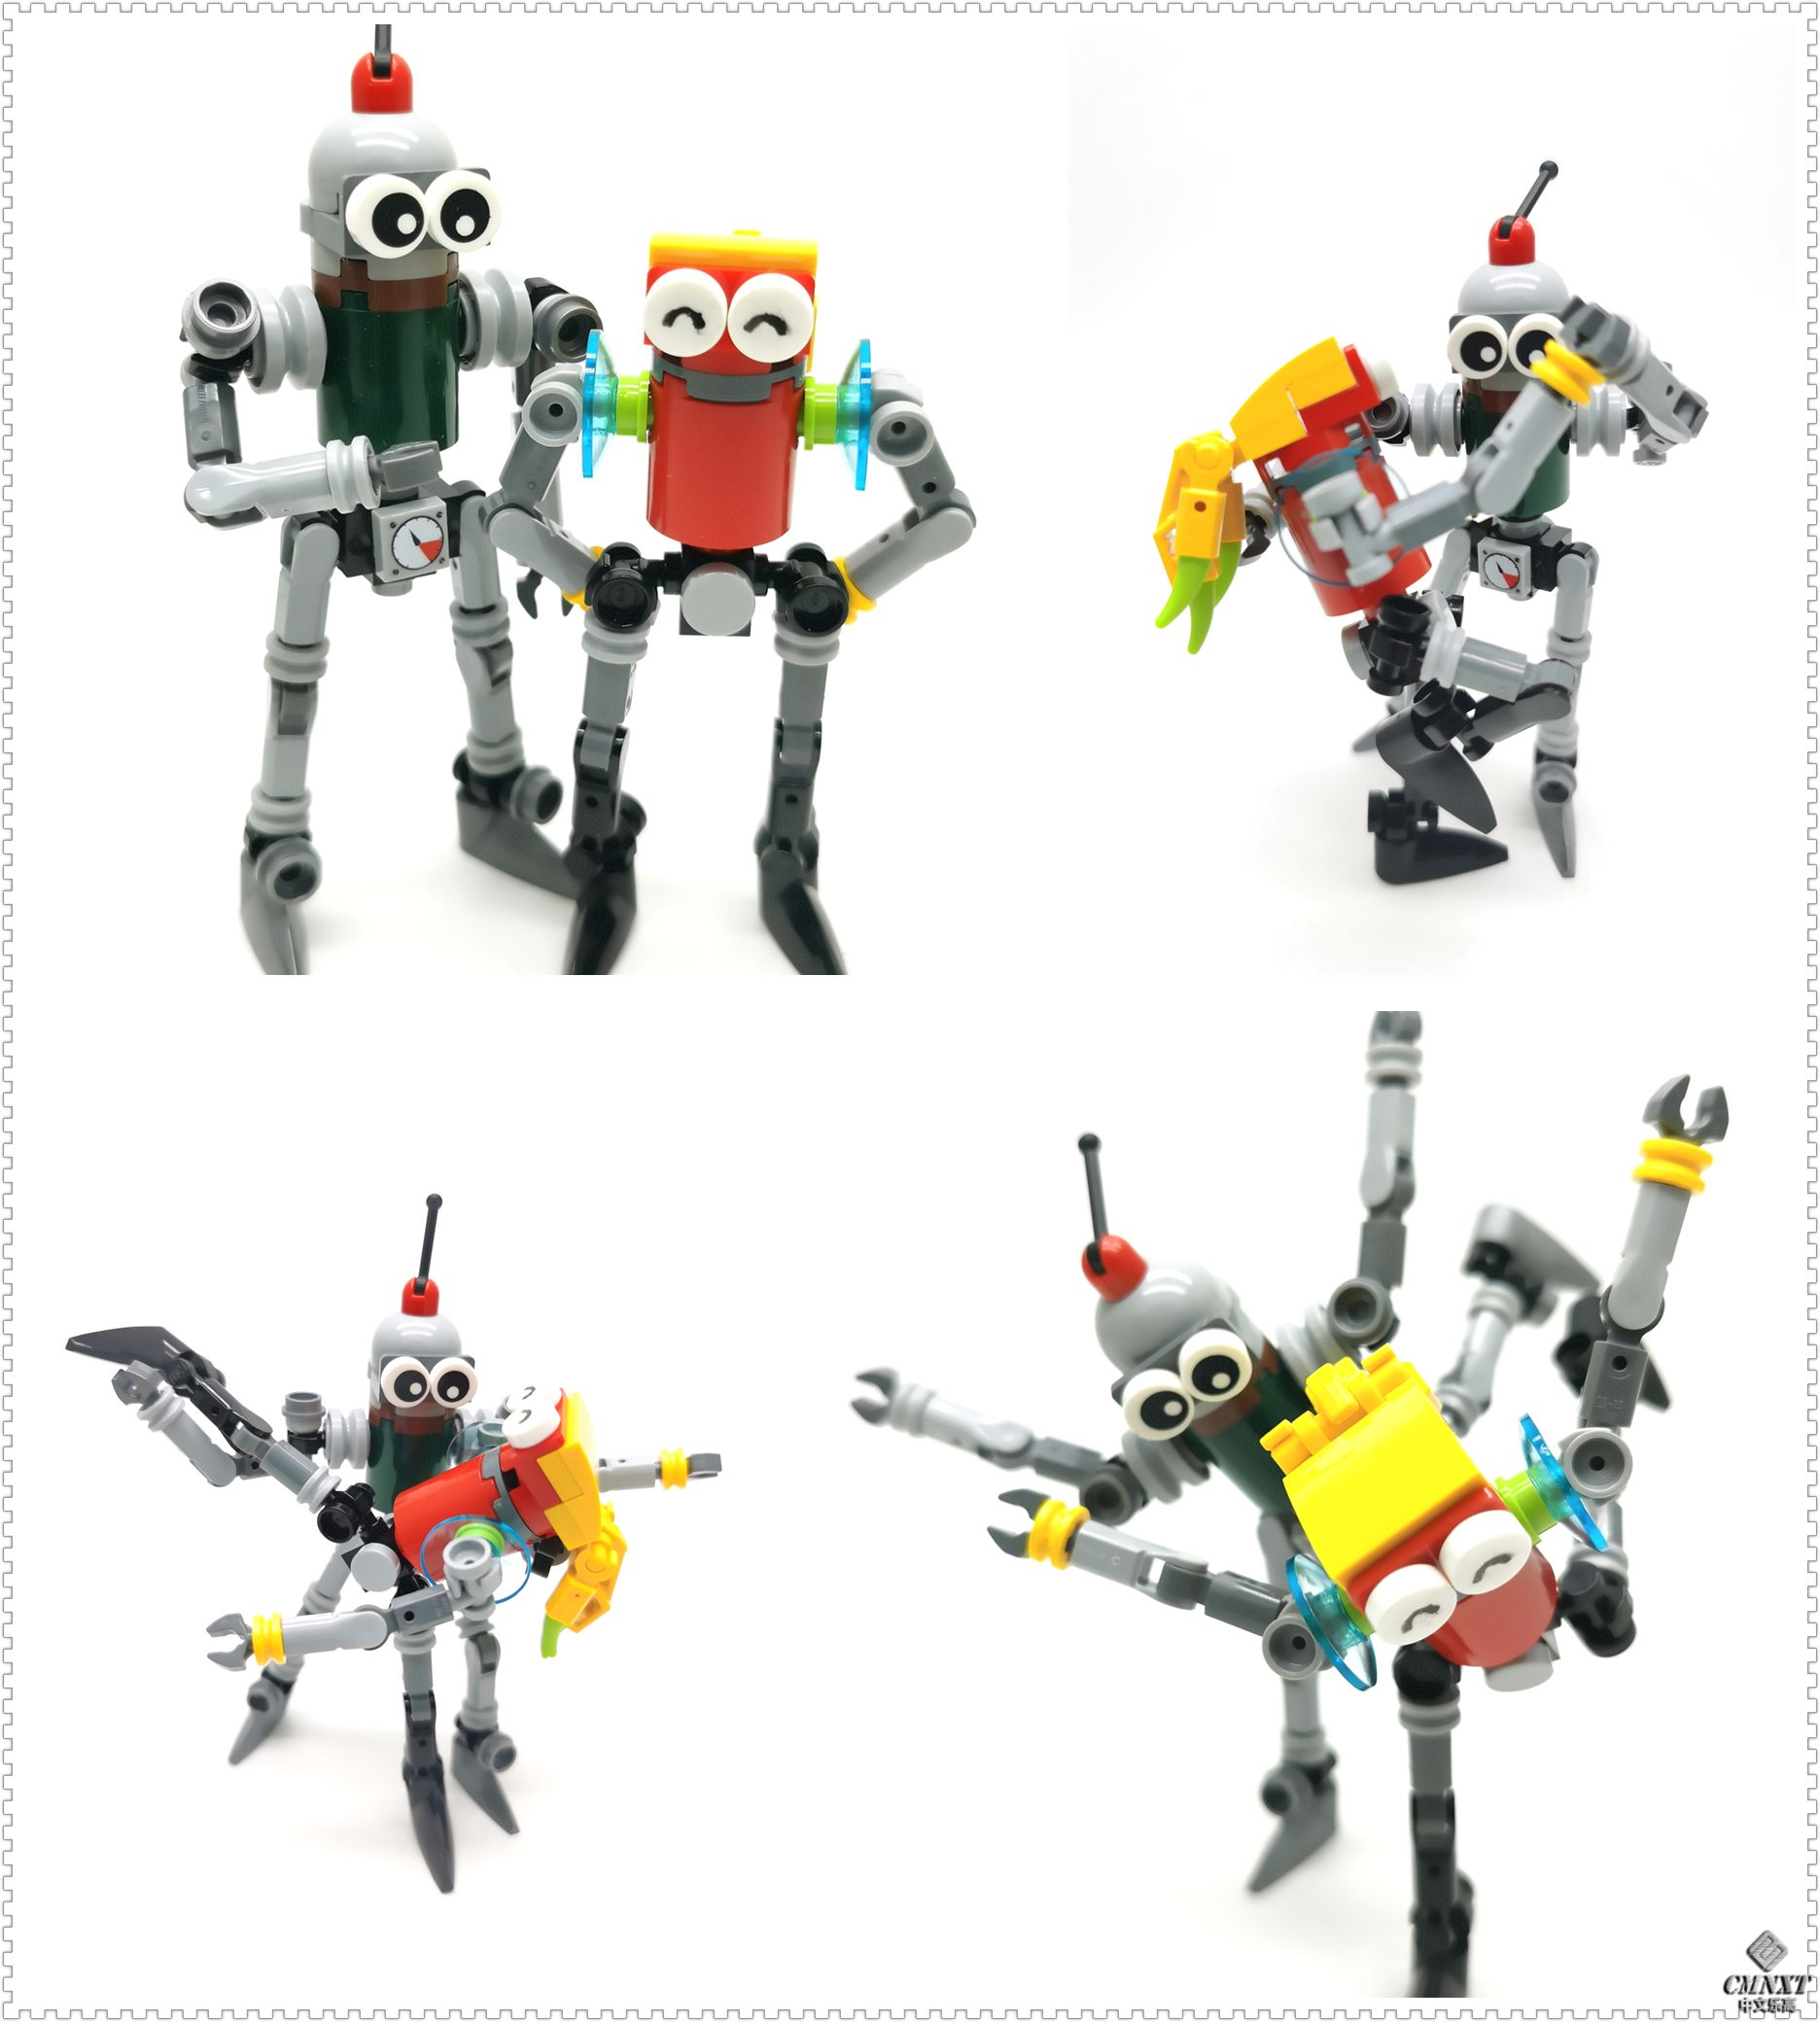 MOC - 钢舞轻盈 Graceful dancing of Steel conso 02.jpg